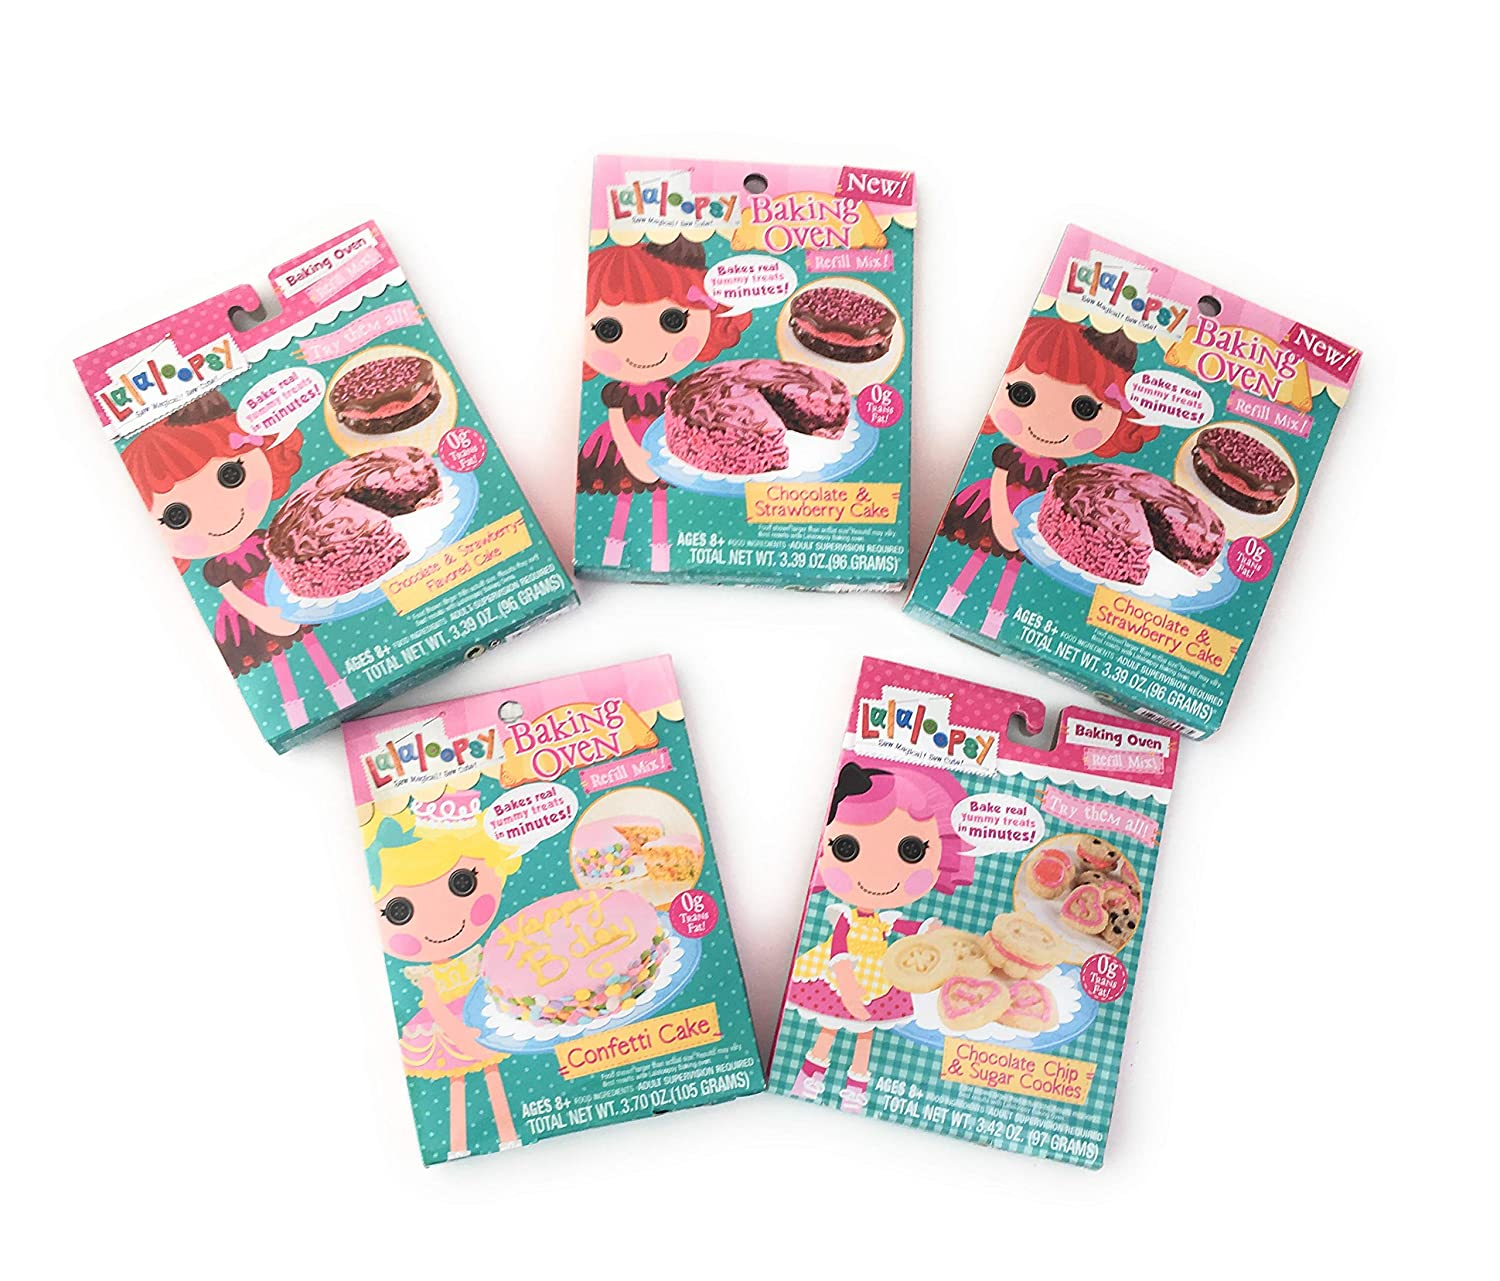 Lalaloopsy Baking Oven Refill Mix 3 Chocolate Strawberry Cake, 1 Chocolate Chip & Sugar Cookie and 1 Confetti Cake Complete Set of 5 Pack Bundle